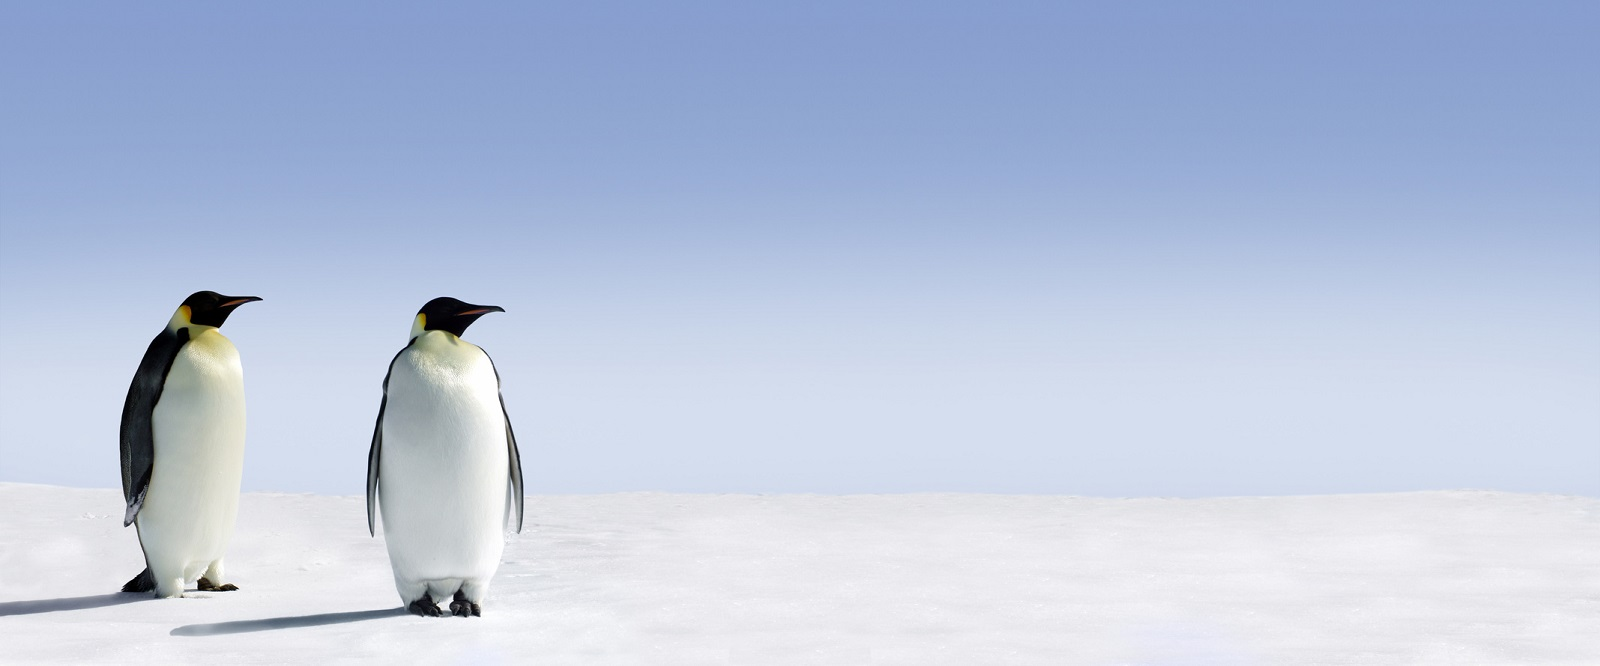 Penguins standing in the snow with lots of copy space